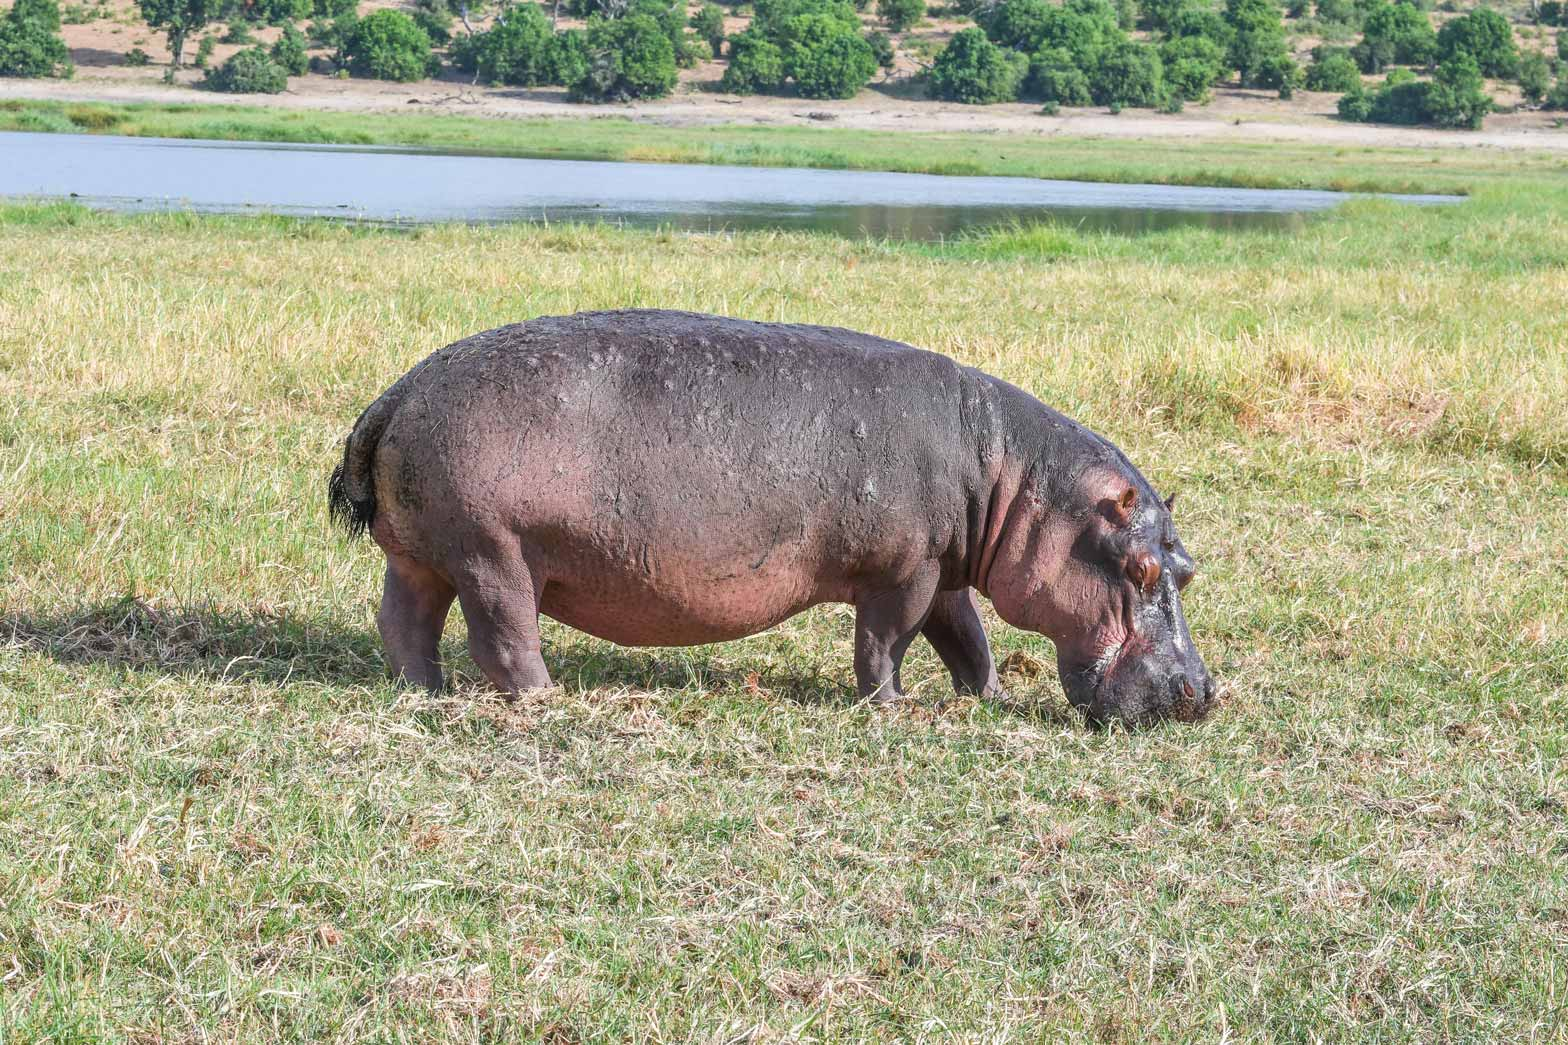 Hippo grazing on the Chobe River